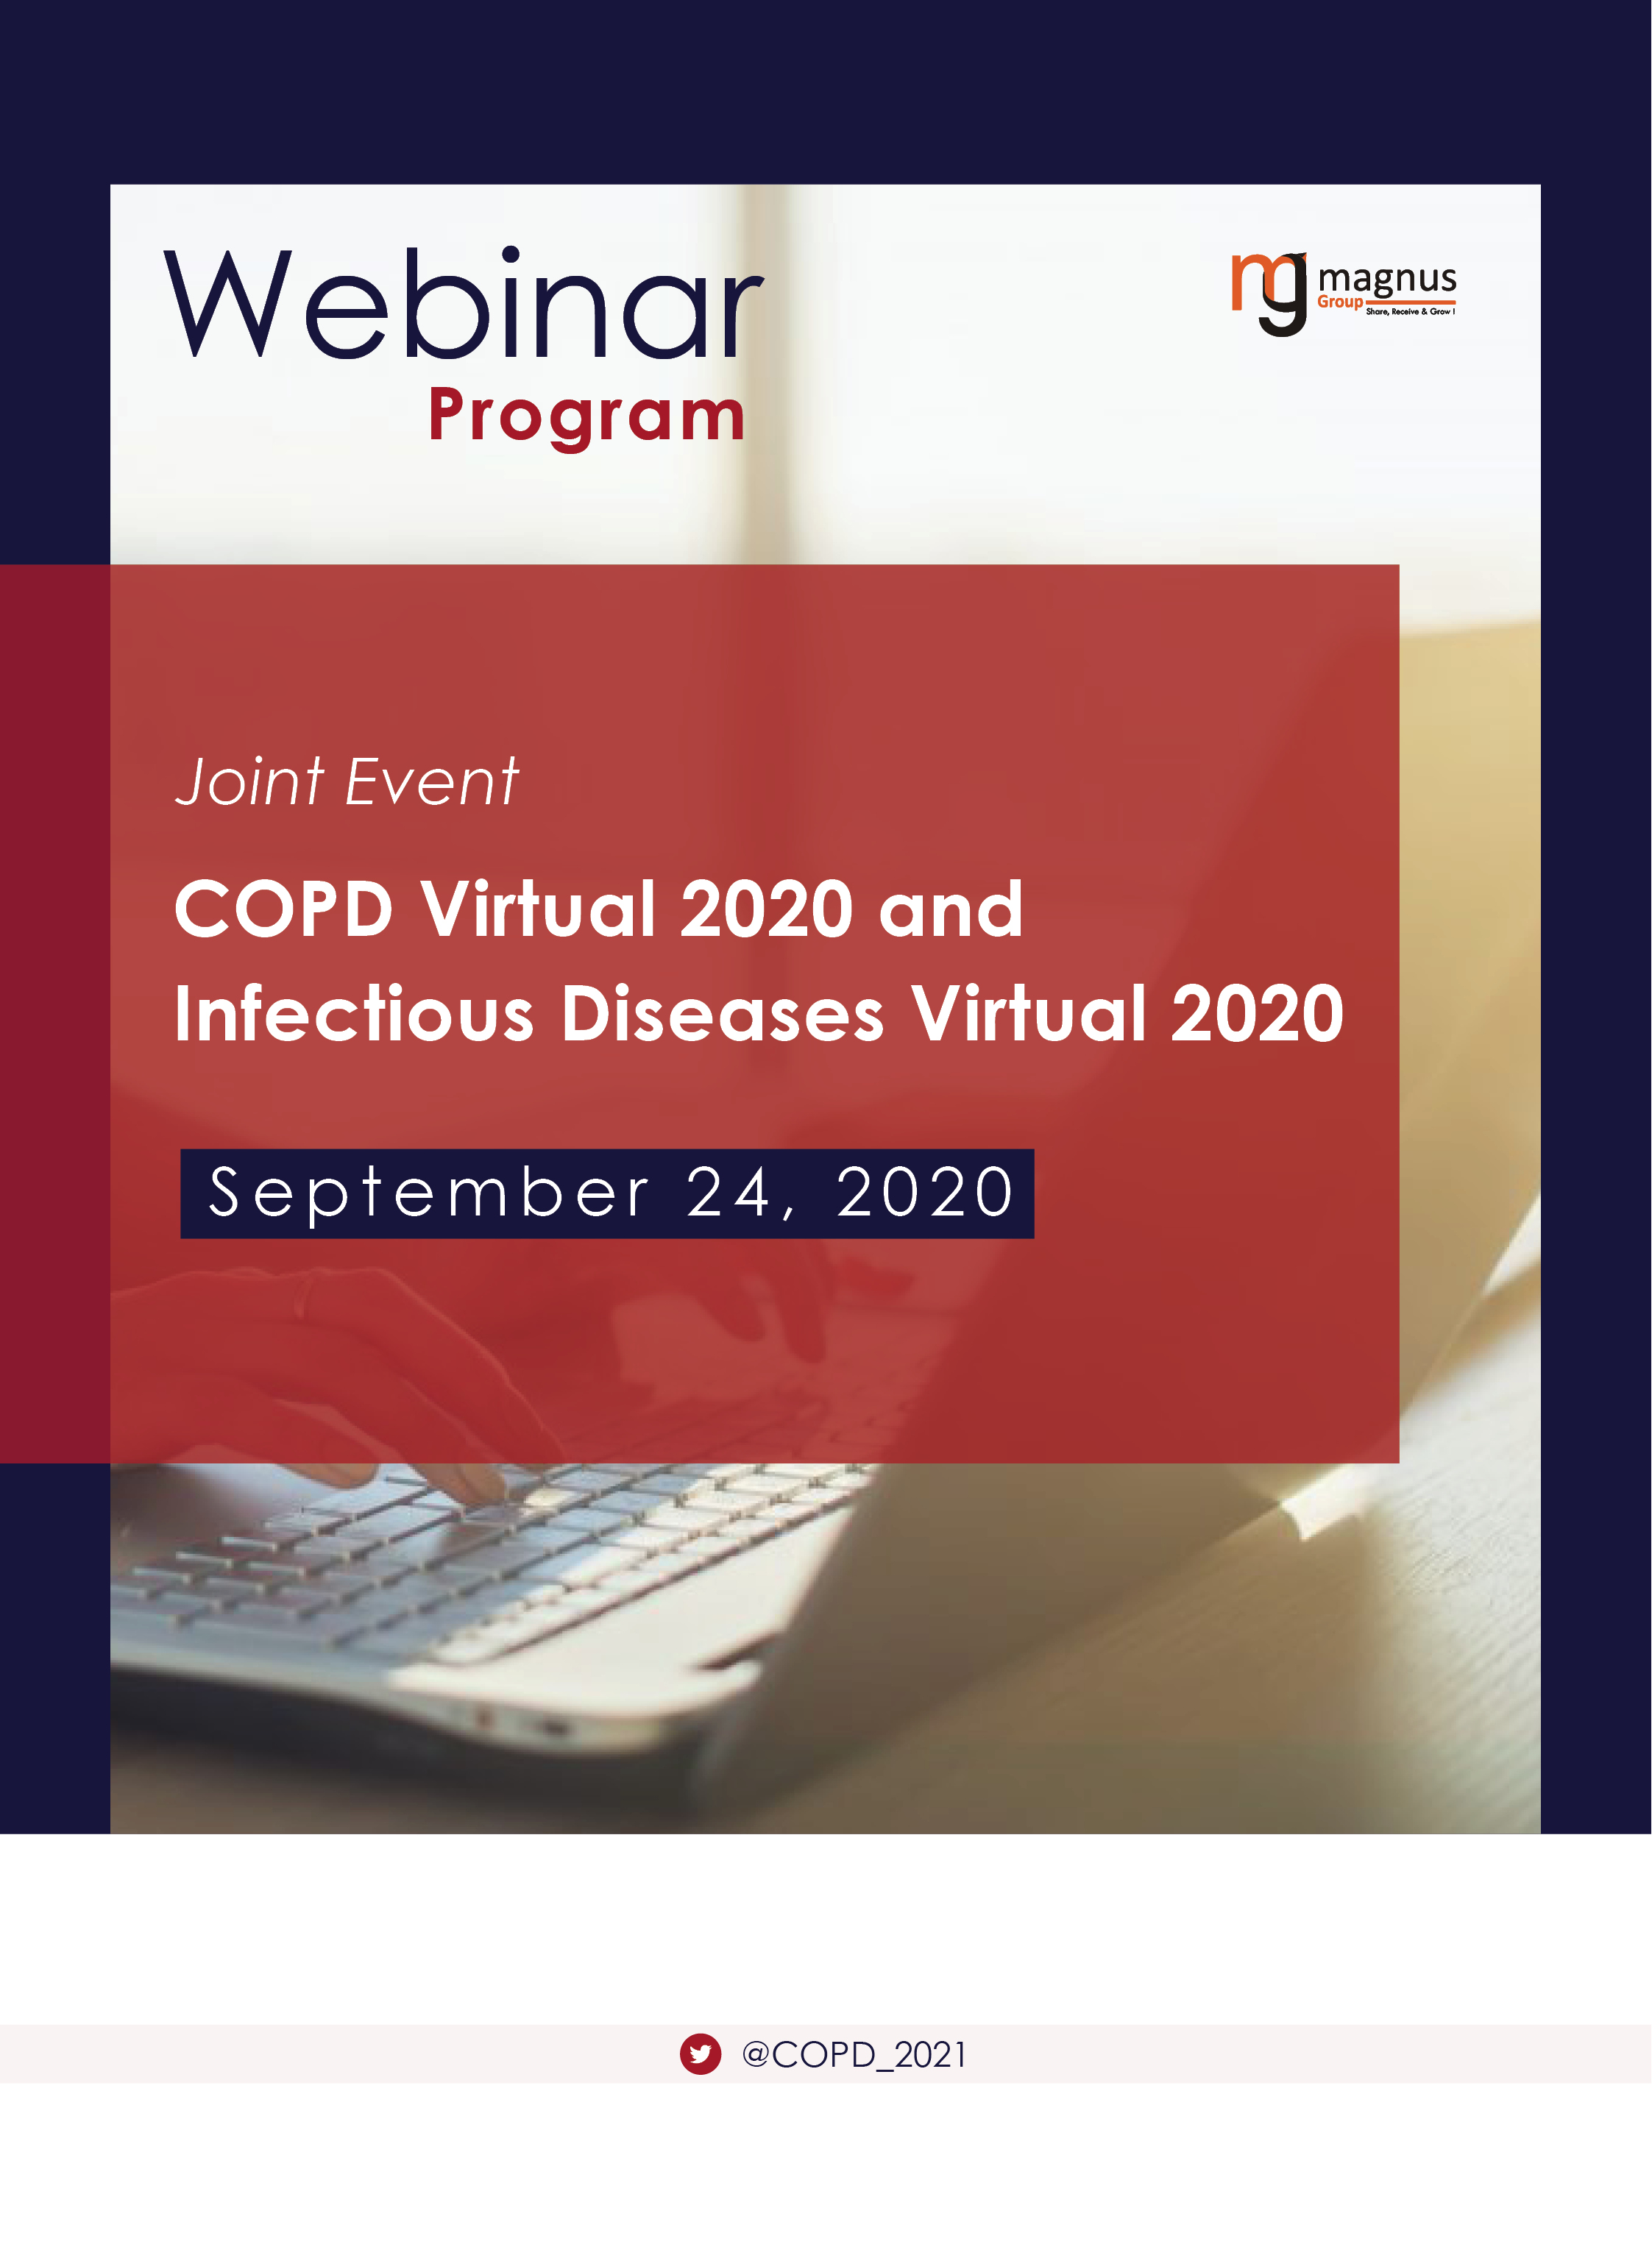 International webinar on COPD and Asthma | Online Event Program